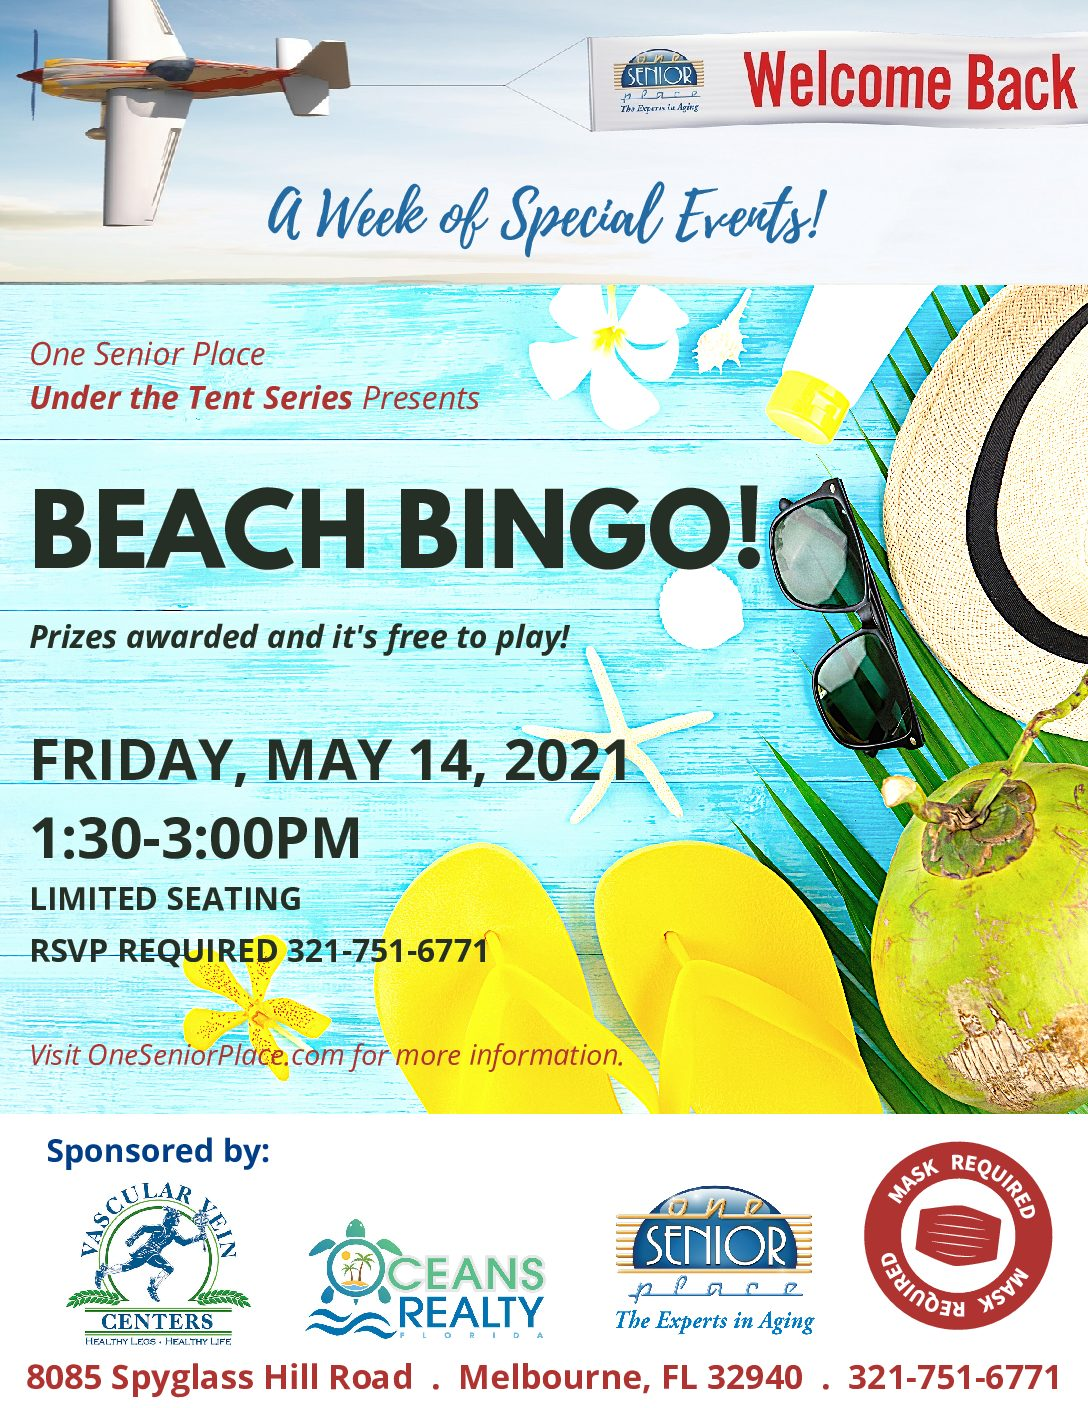 Beach BINGO hosted by Vascular Vein Centers and co-sponsored by Oceans Realty, Under The Tent Series